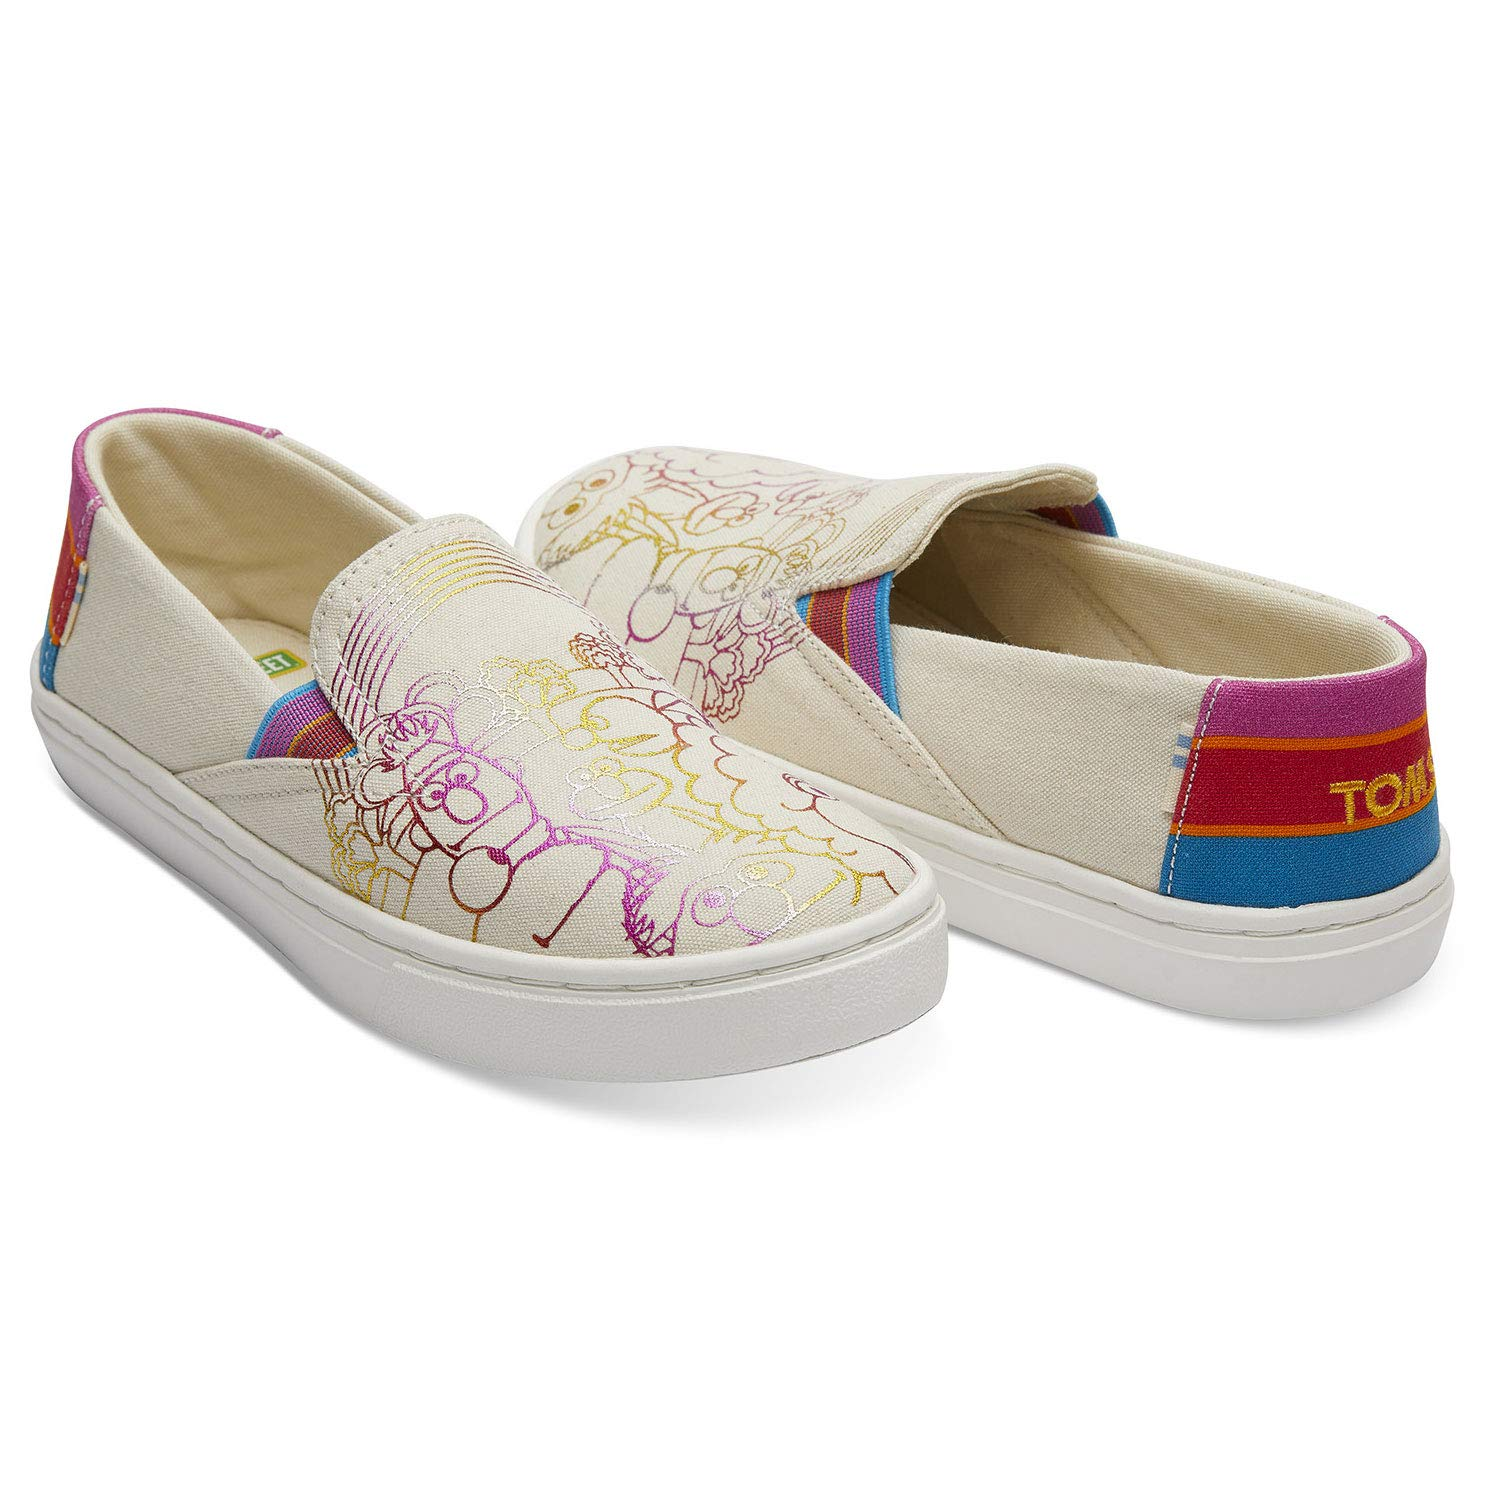 TOMS Sesame Street X Foil Printed Canvas Youth Luca Slip-Ons 10013644 (Size: 6) by TOMS (Image #2)